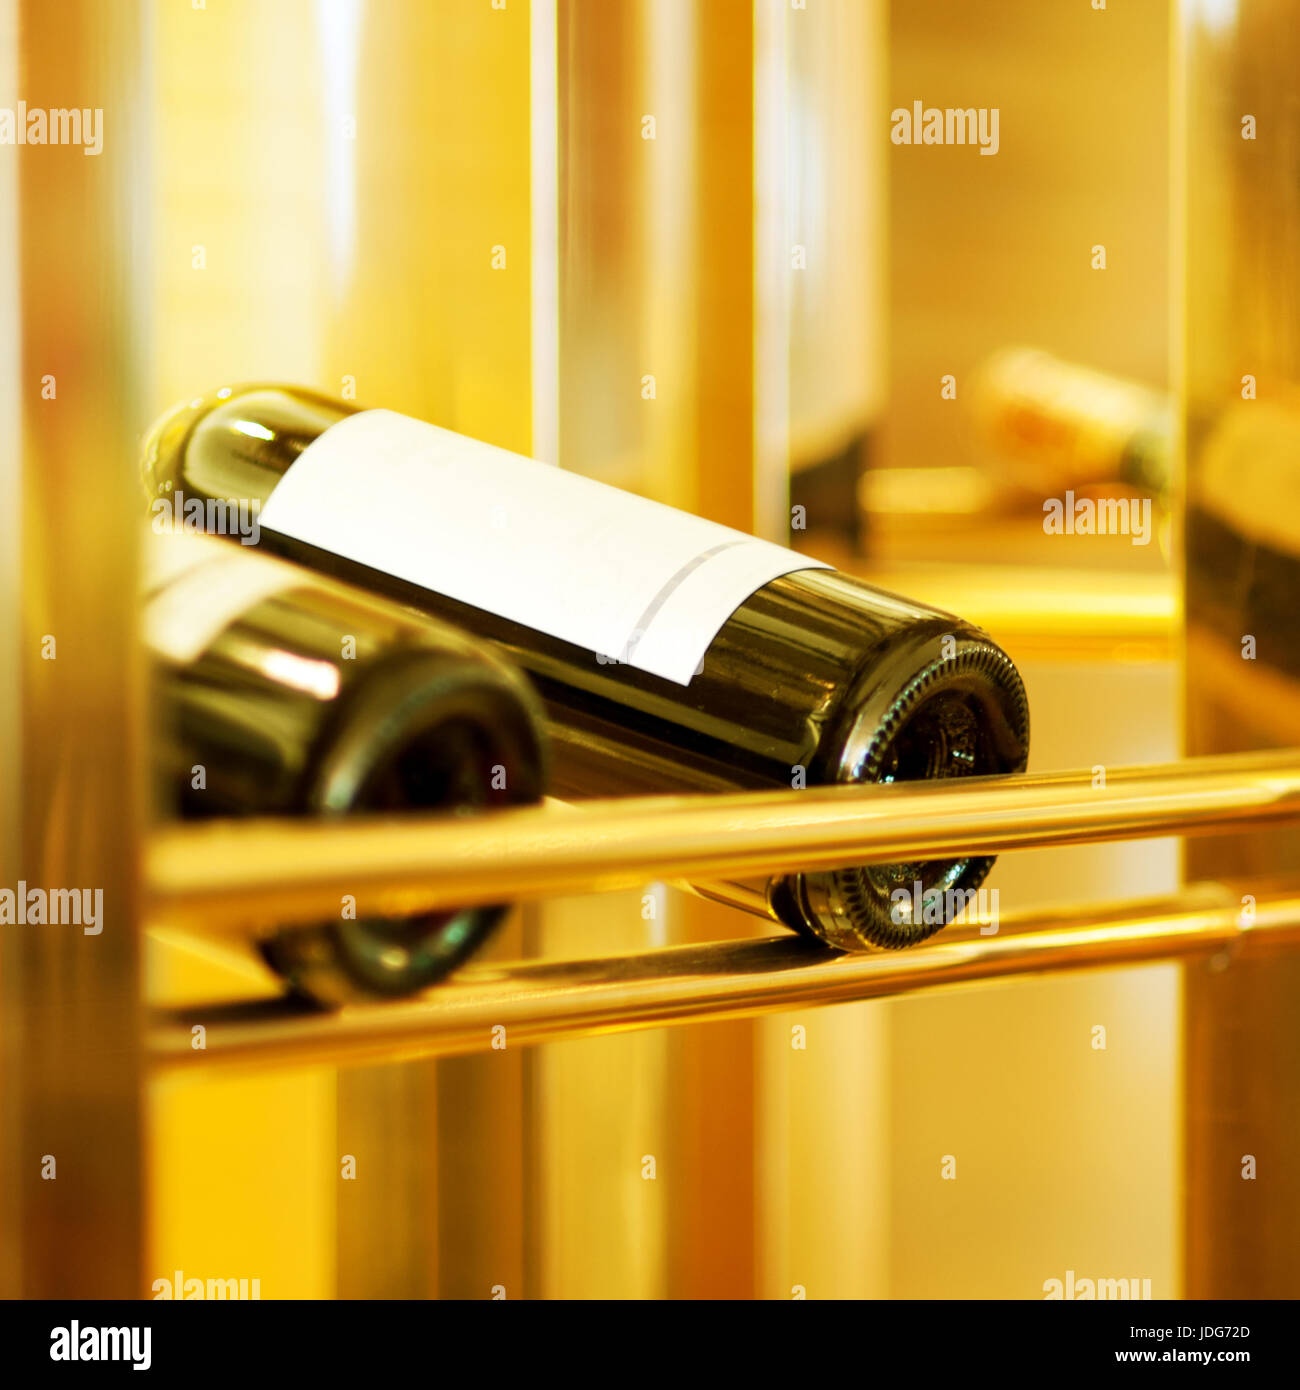 Light irradiation of the wine cooler, wine in France. - Stock Image